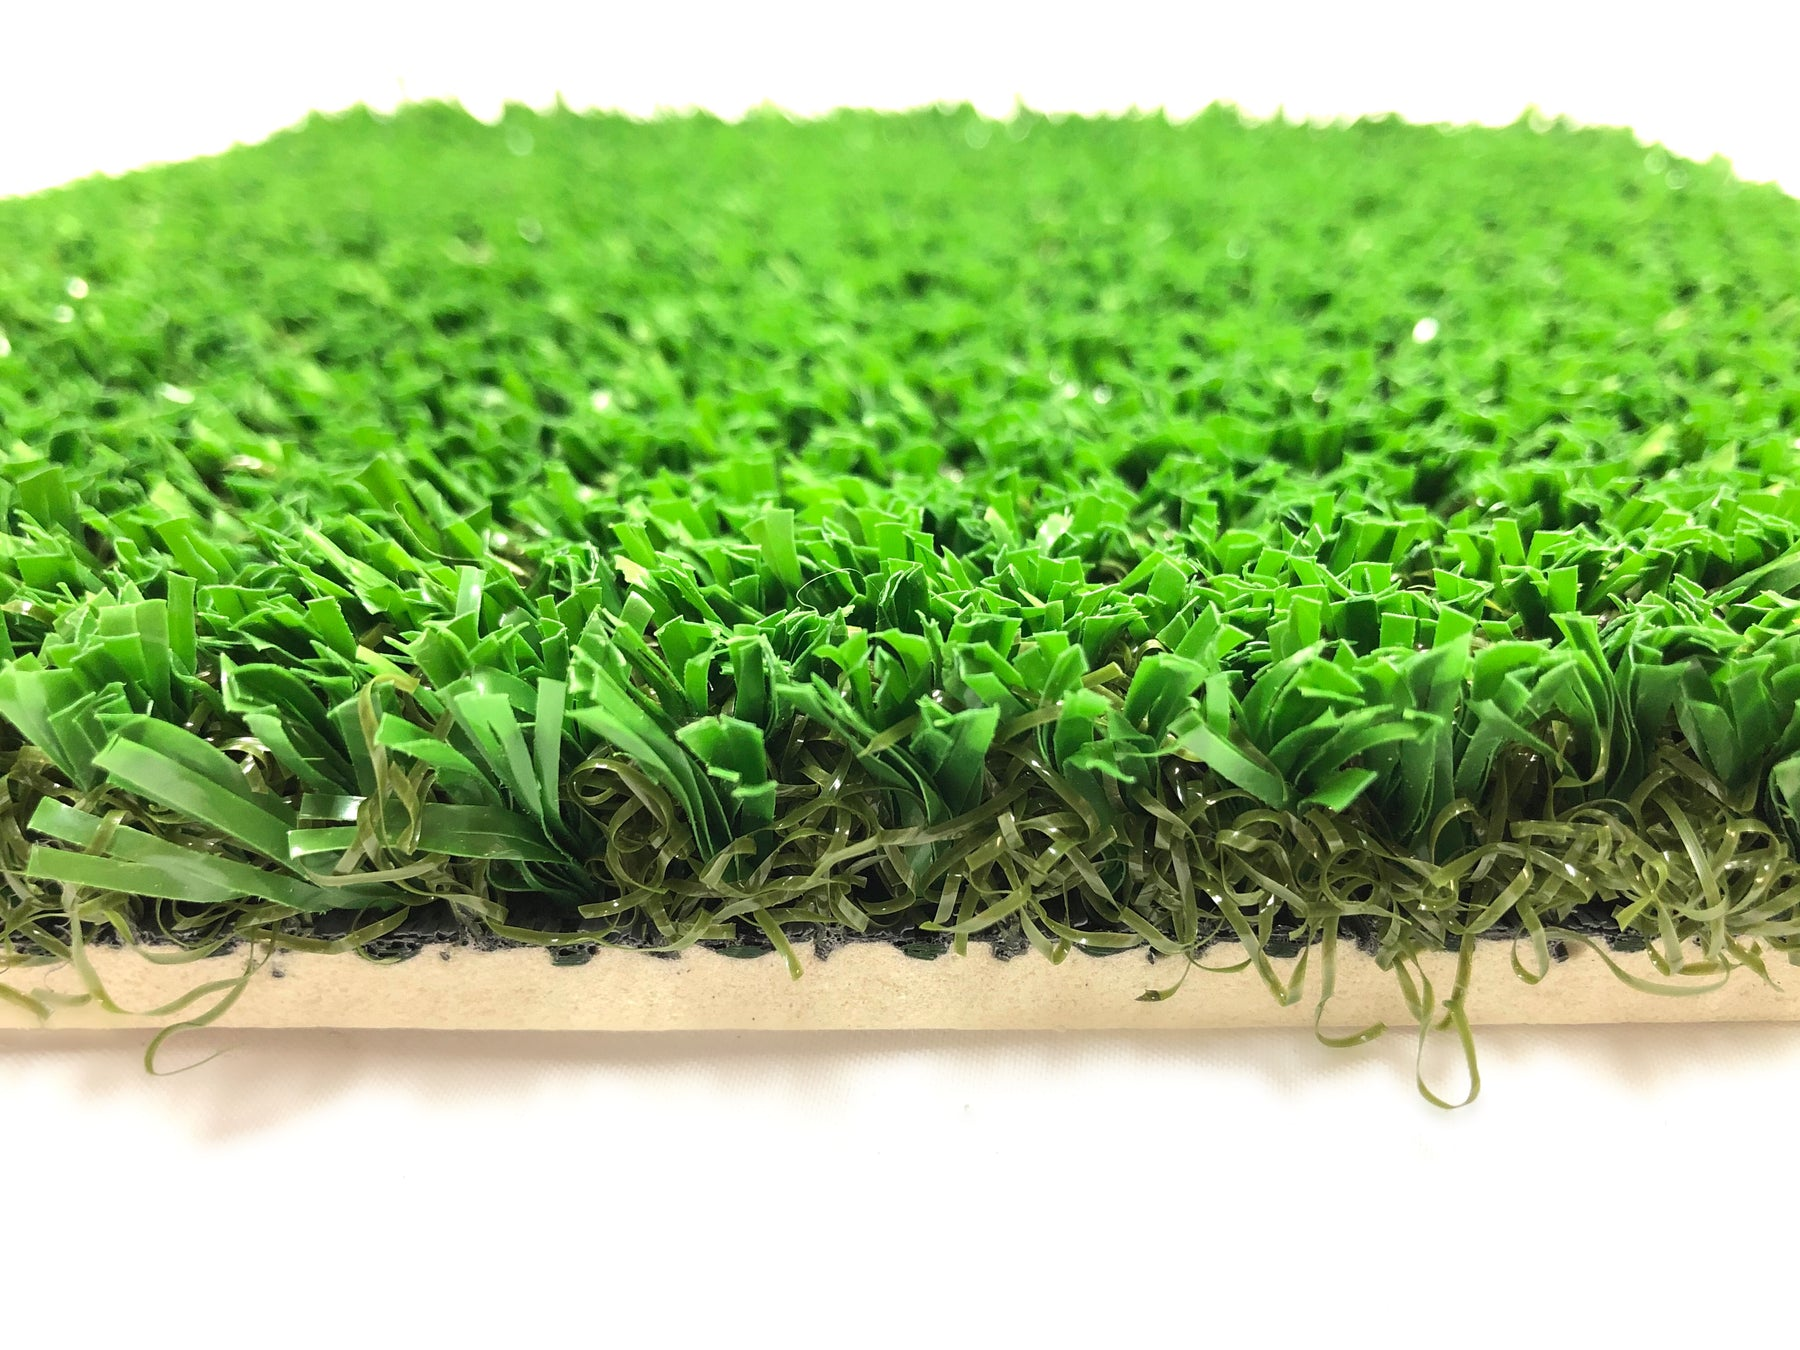 GREEN EAGLE SERIES: DURA - 5mm Foam - Slit-Film - Non-Infilled - American Brand Artificial Grass - $5.69 Sq.Ft. / Colors Available / 60oz / SPECIAL ORDER (#11590)